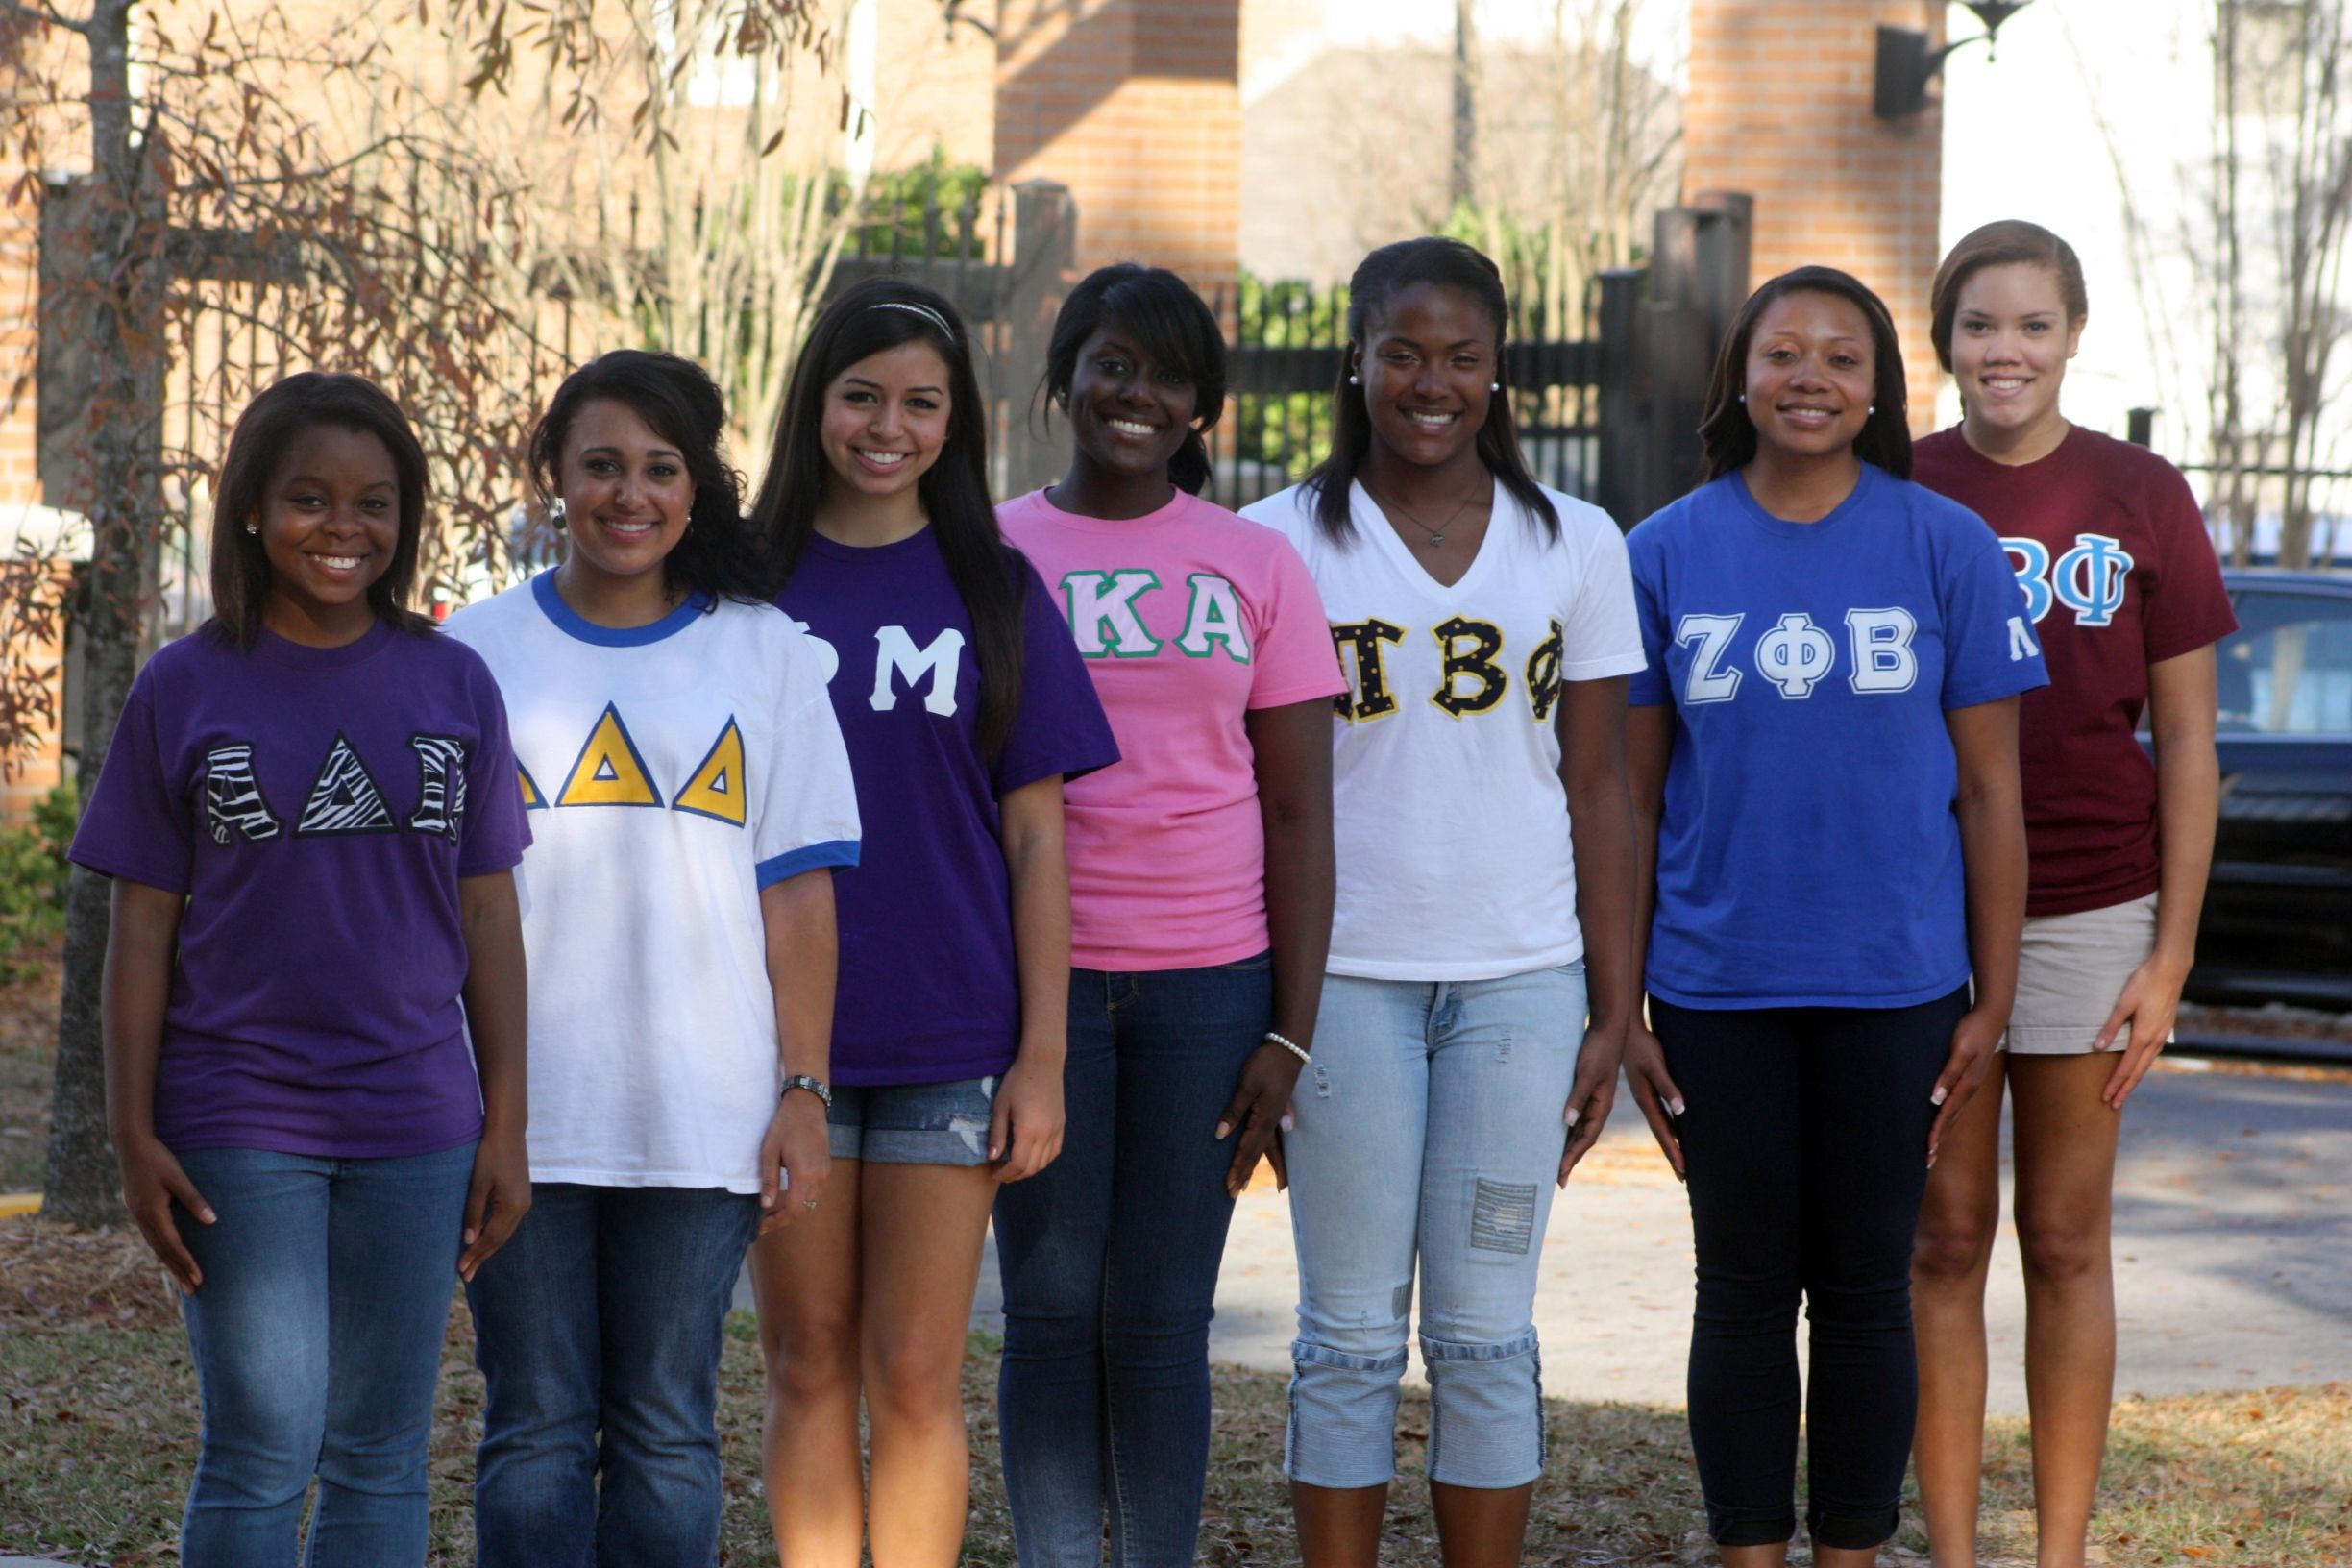 Sororities at The University of Southern Mississippi